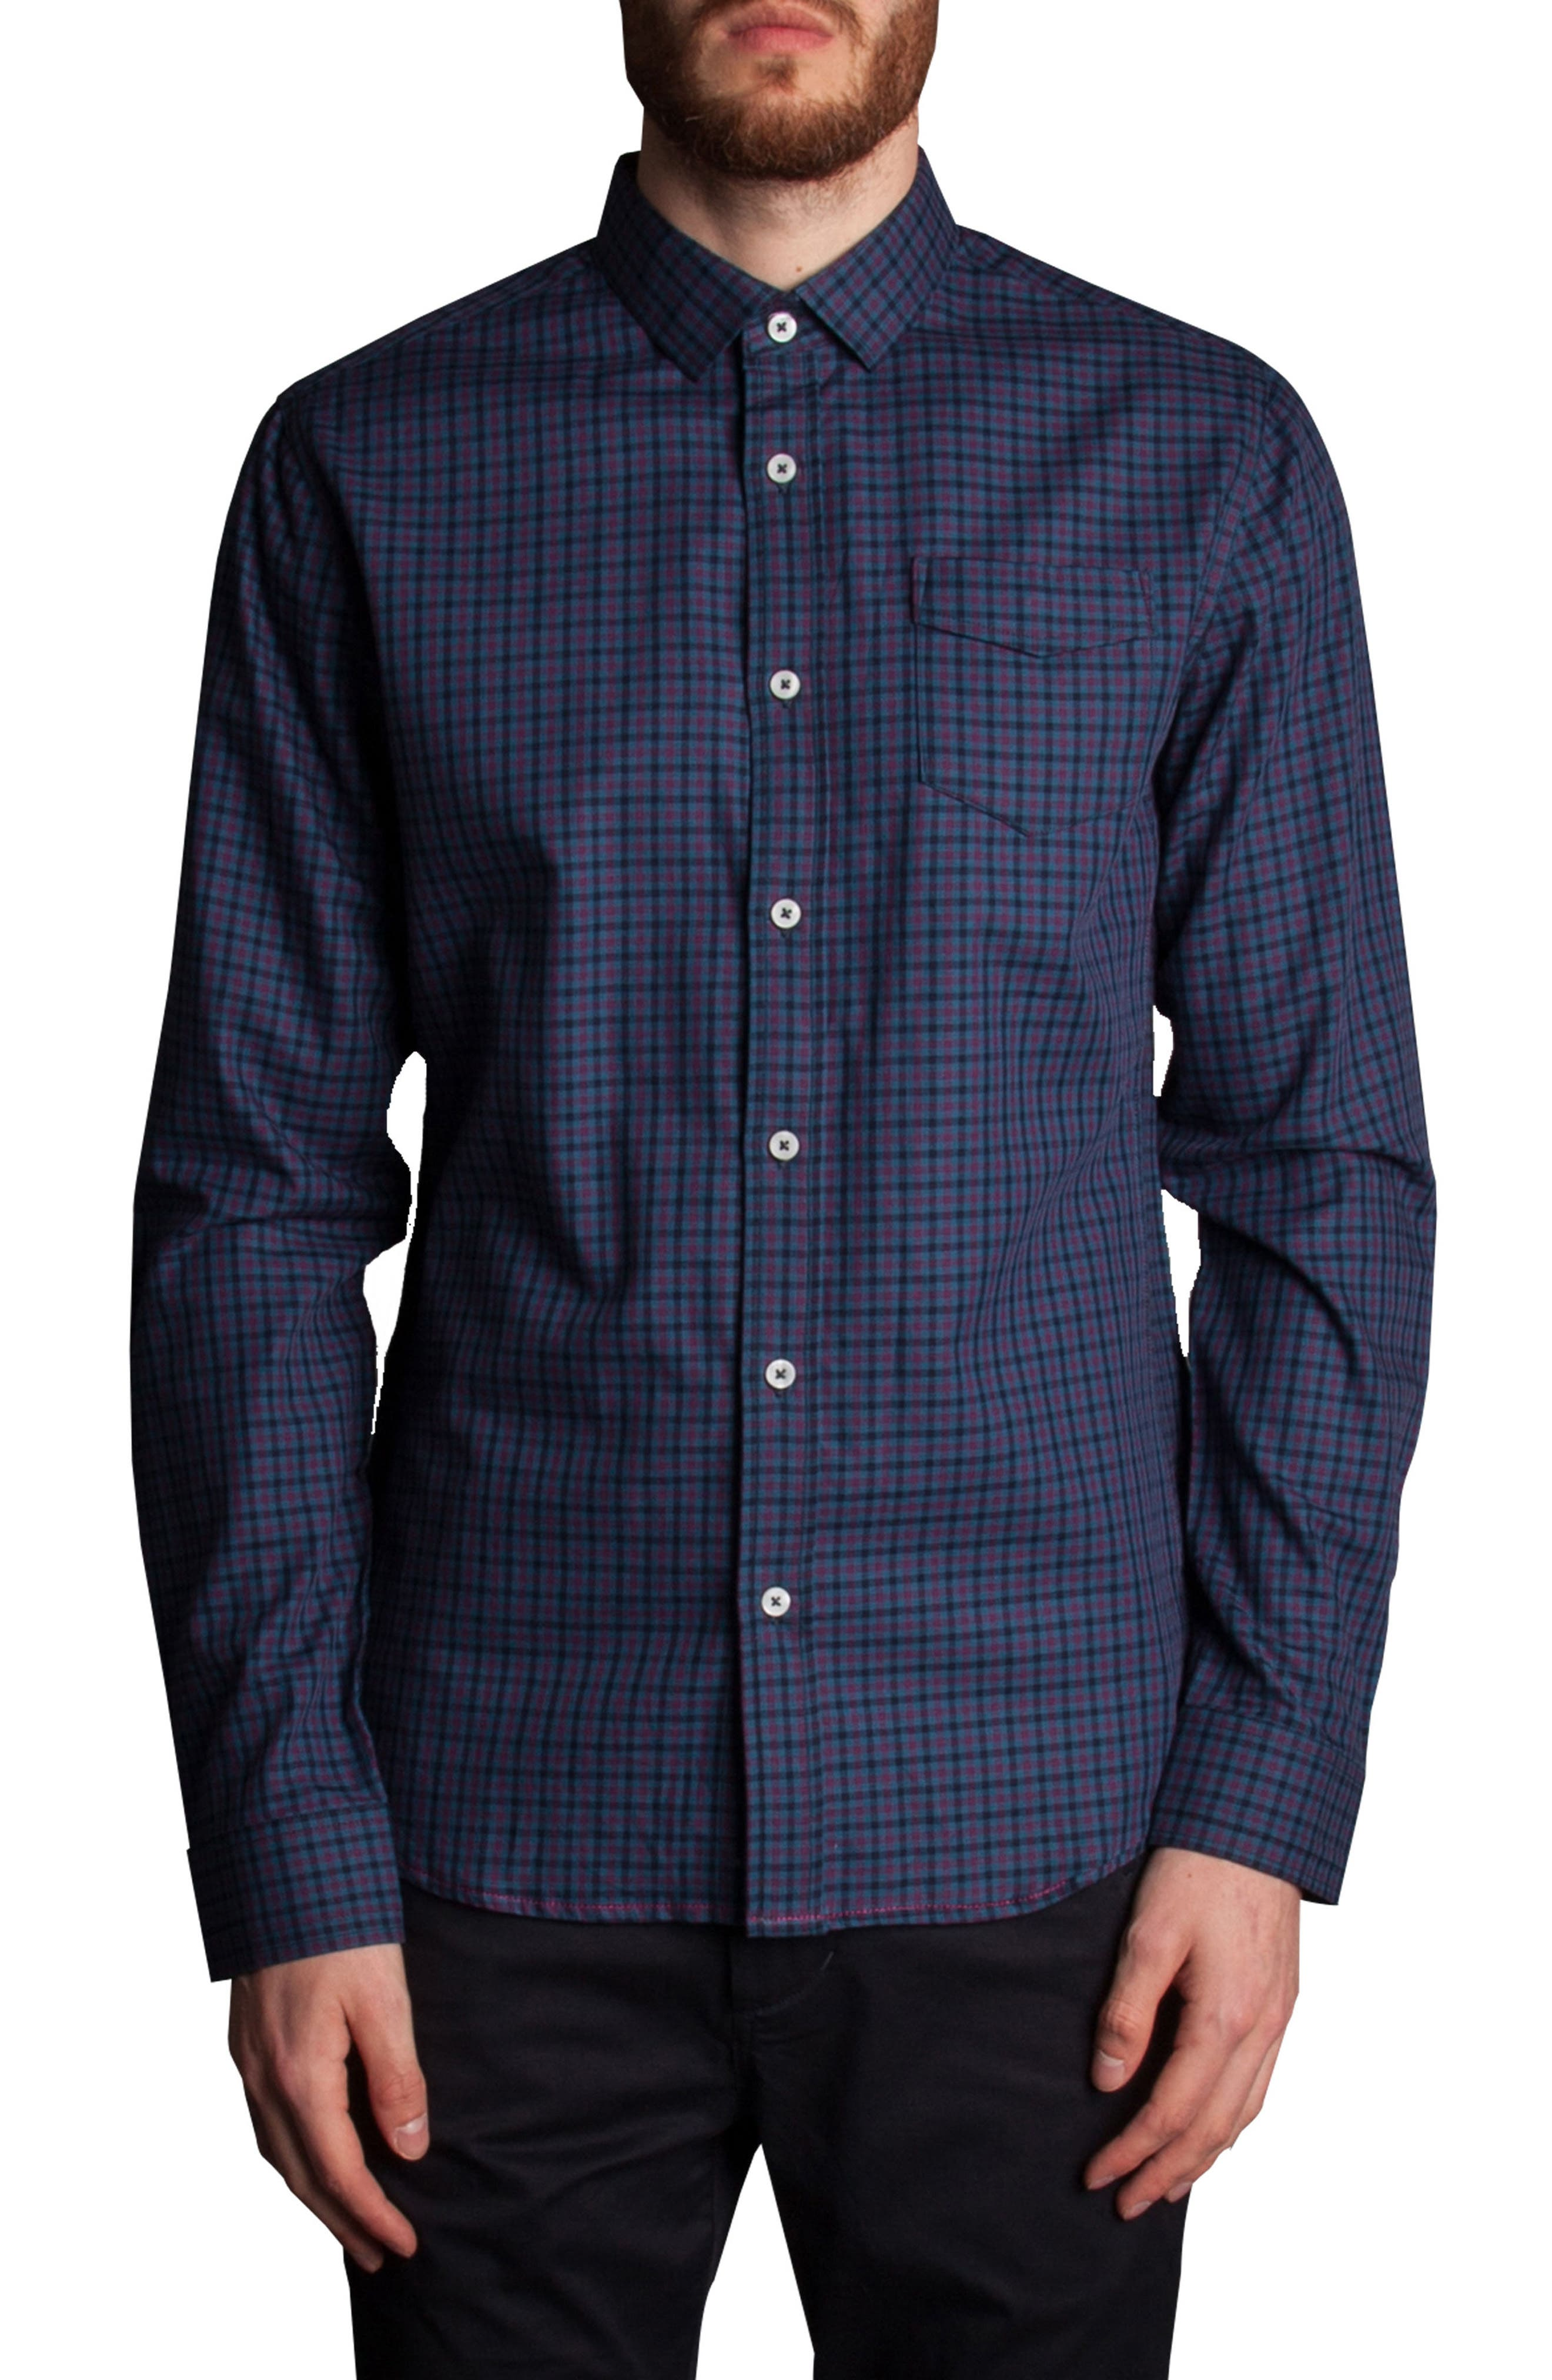 Alternate Image 1 Selected - Descendant of Thieves Inter Plaid Sport Shirt